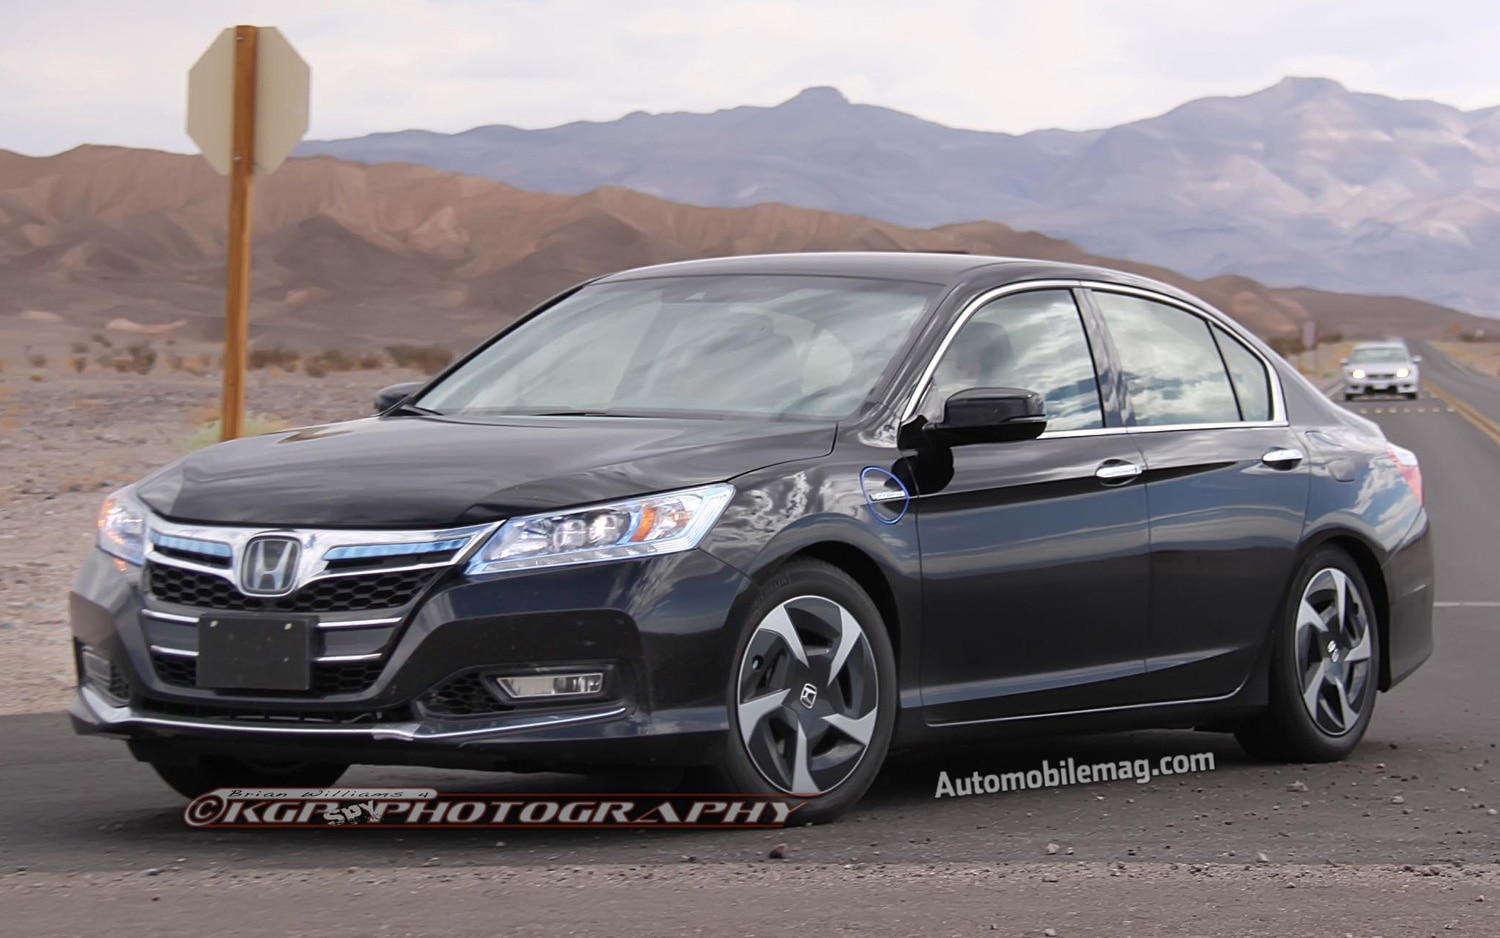 2013 Honda Accord PHEV Hybrid Front Three Quarters View 21